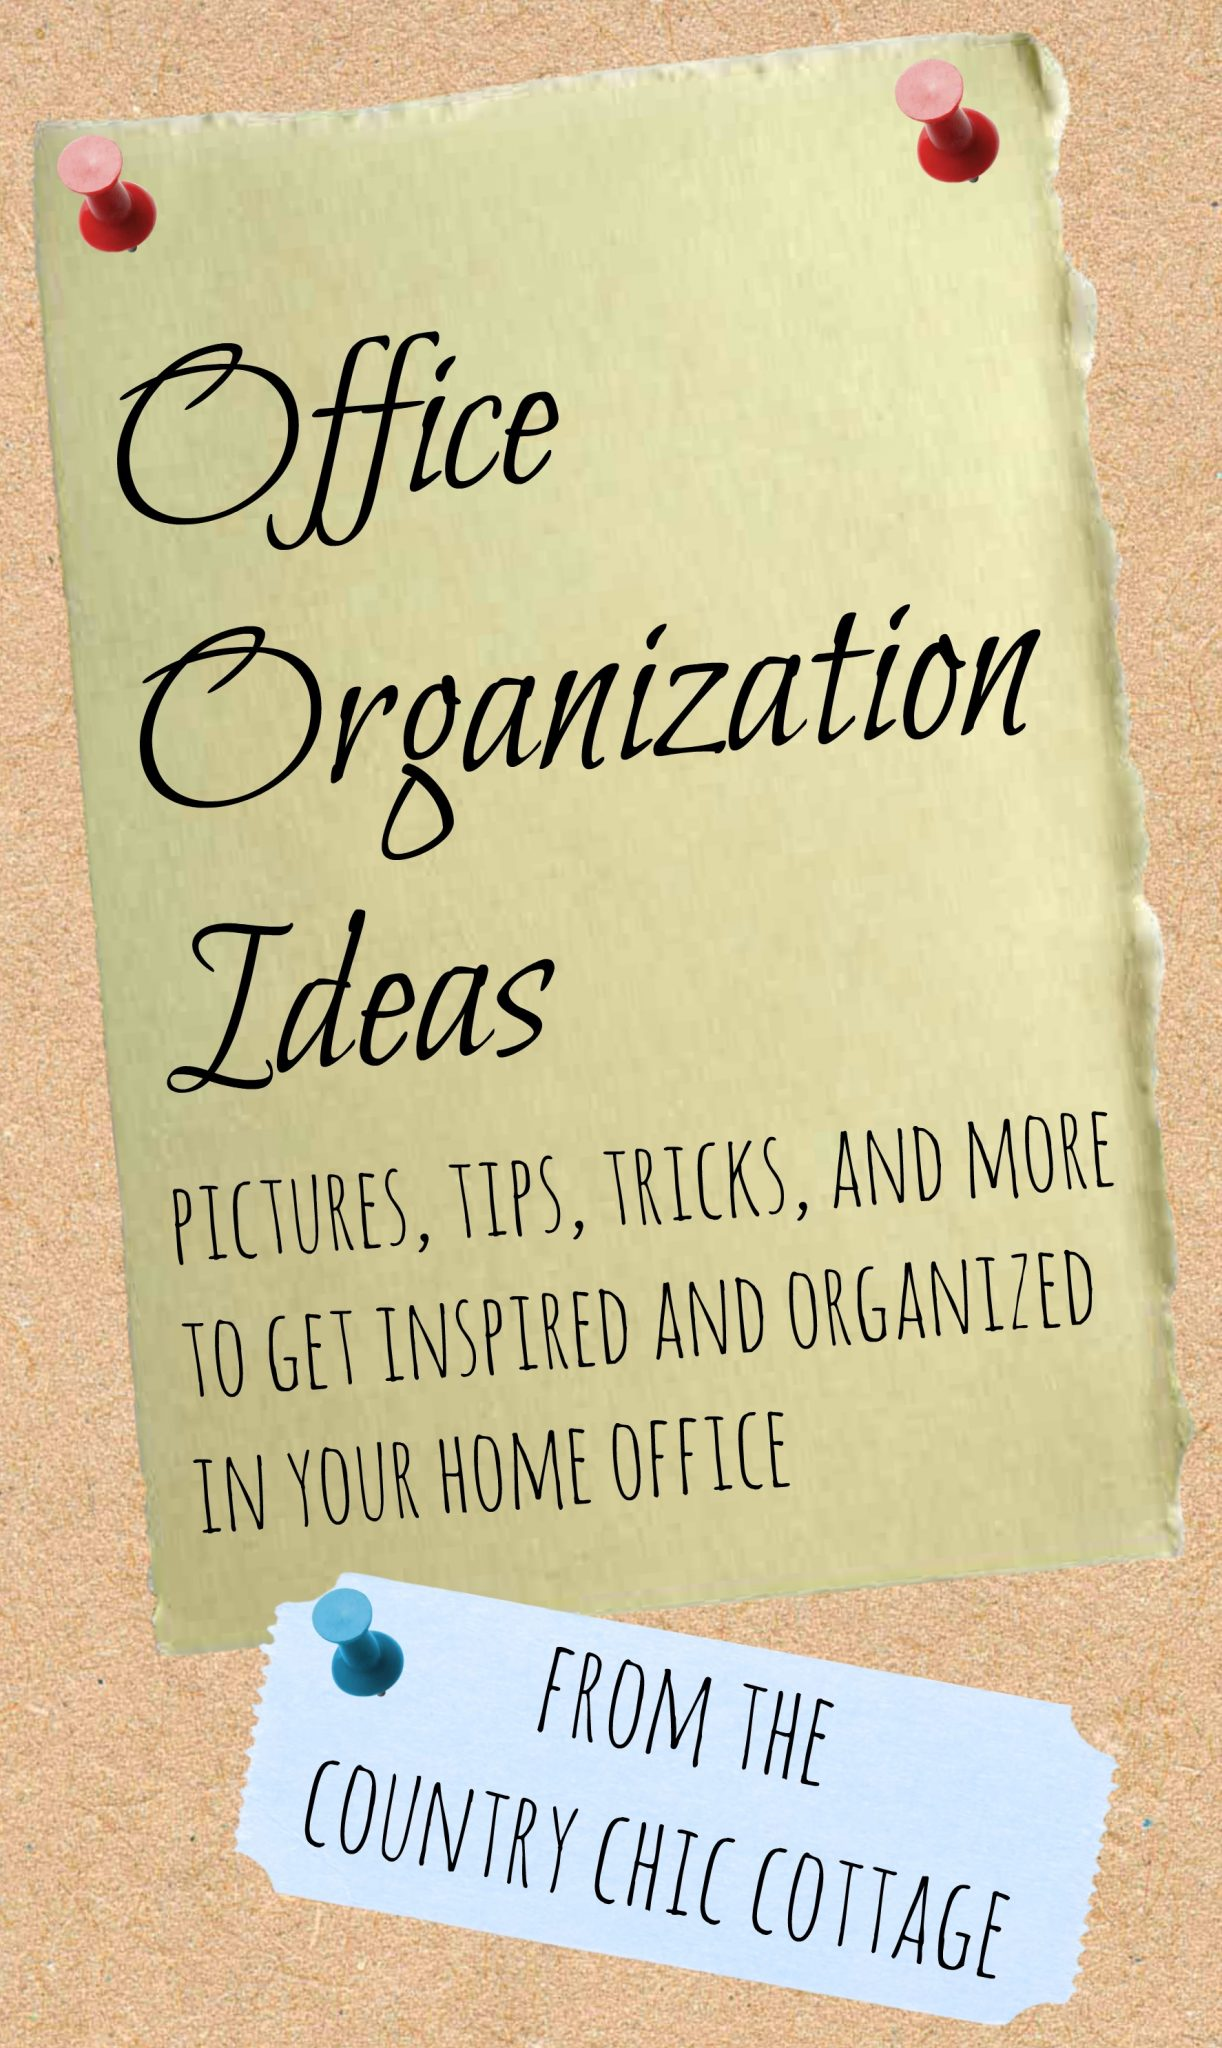 Office organization ideas the country chic cottage for Office organization tips and ideas